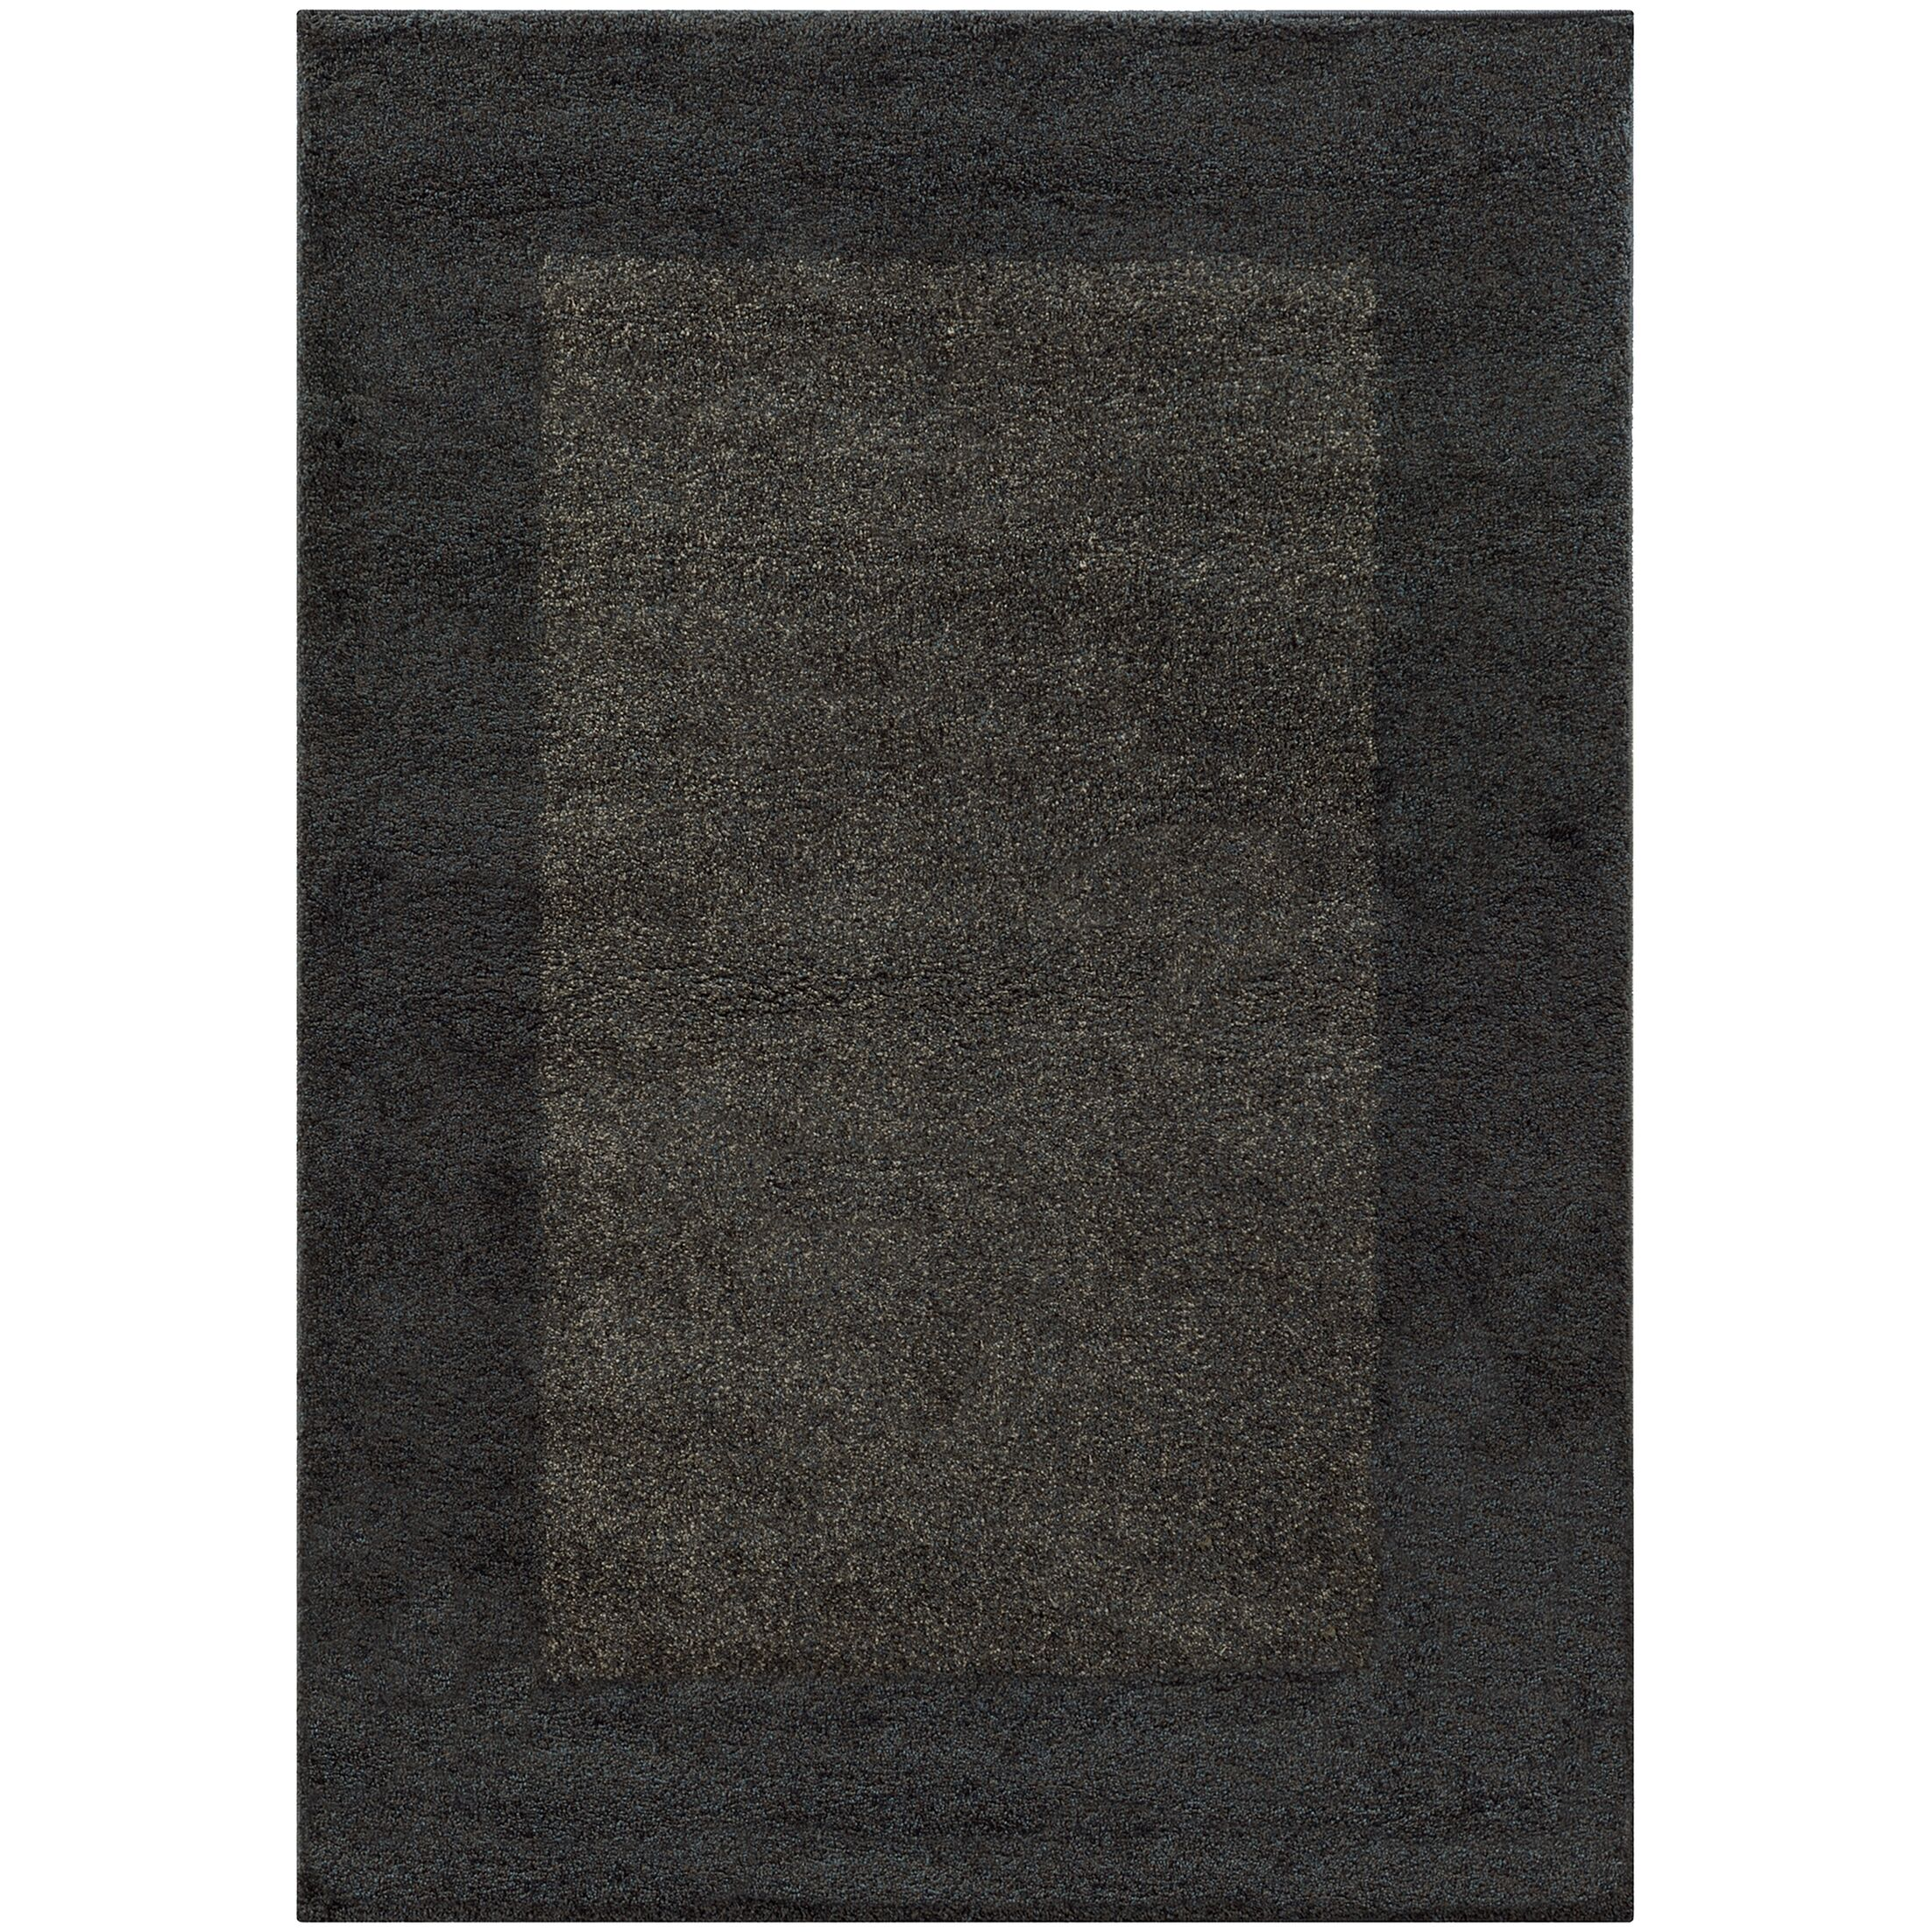 Choncey Black/Gray Area Rug Rug Size: Rectangle 6'7